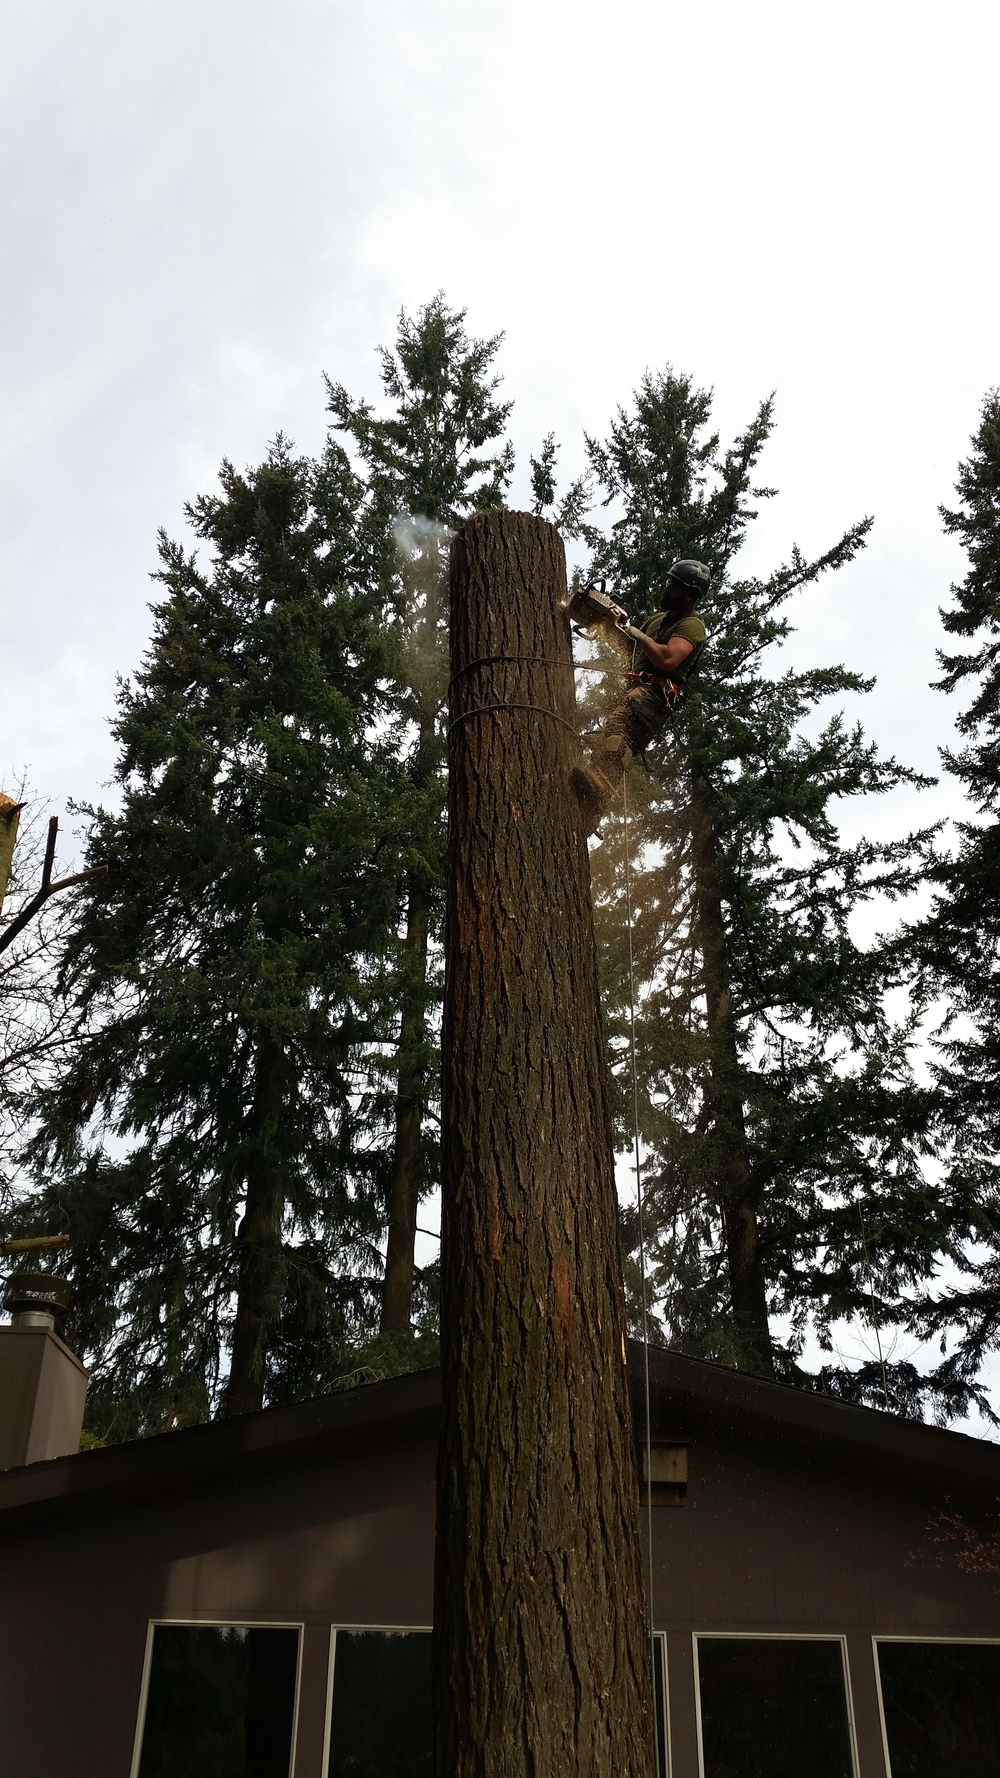 Arboriculture International adheres to ANSI z133.1 Safety Standards, the guidelines recognised by the International Society of Arboriculture (ISA) and the Tree Care Industry Association (TCIA).